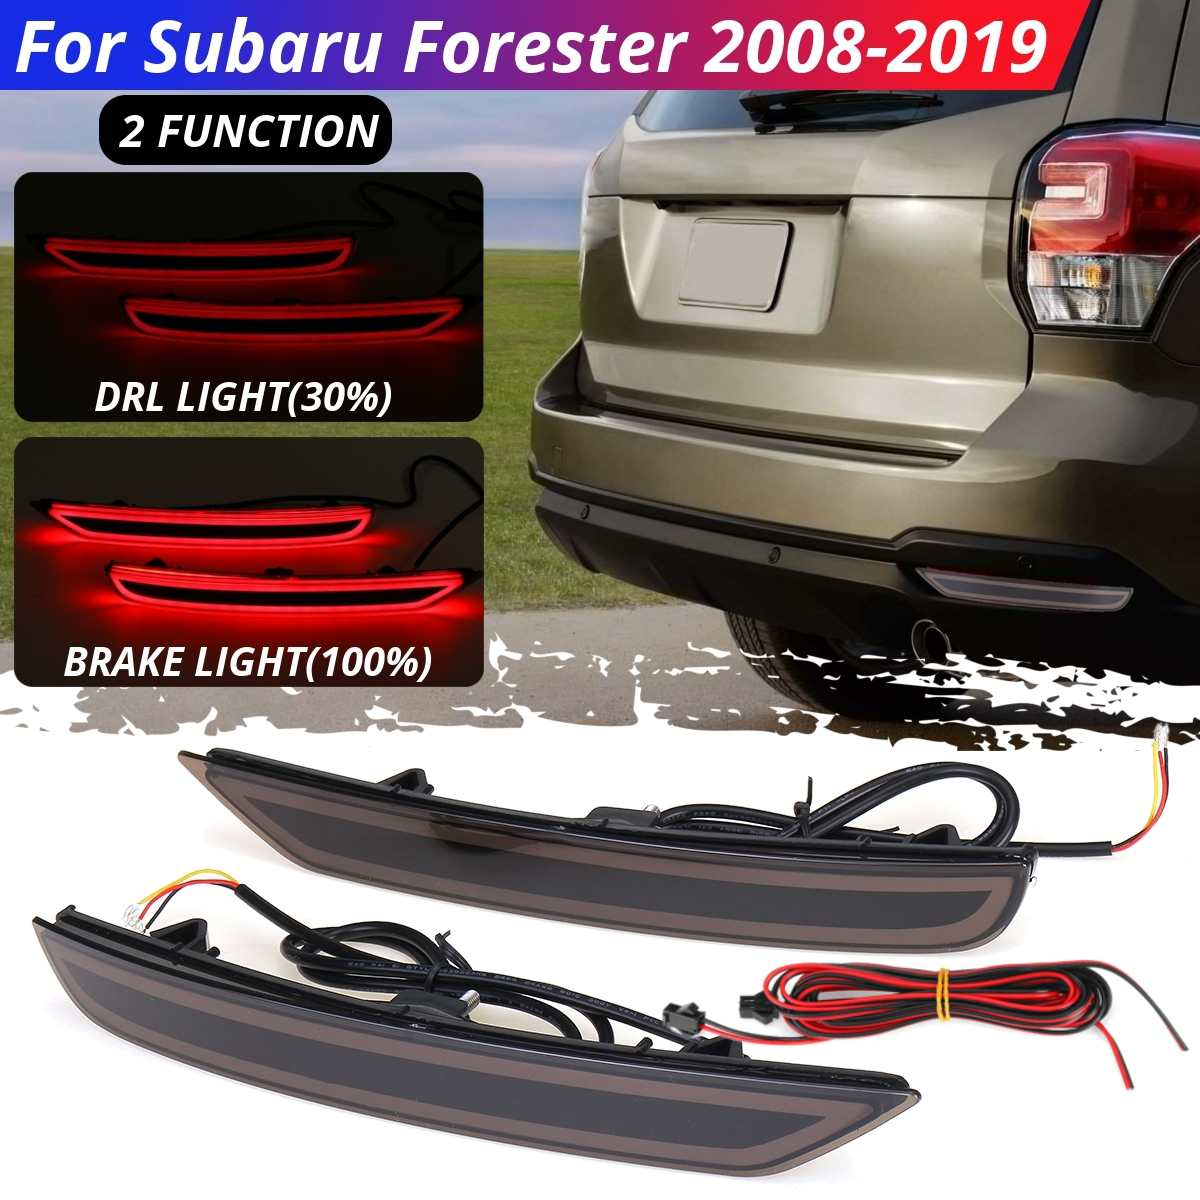 1 Pair LED Rear Bumper Reflector Light Brake DRL Turn Signal Light 2 / 3 Functions Tail Lamp For Subaru Forester 2008 2009-2019